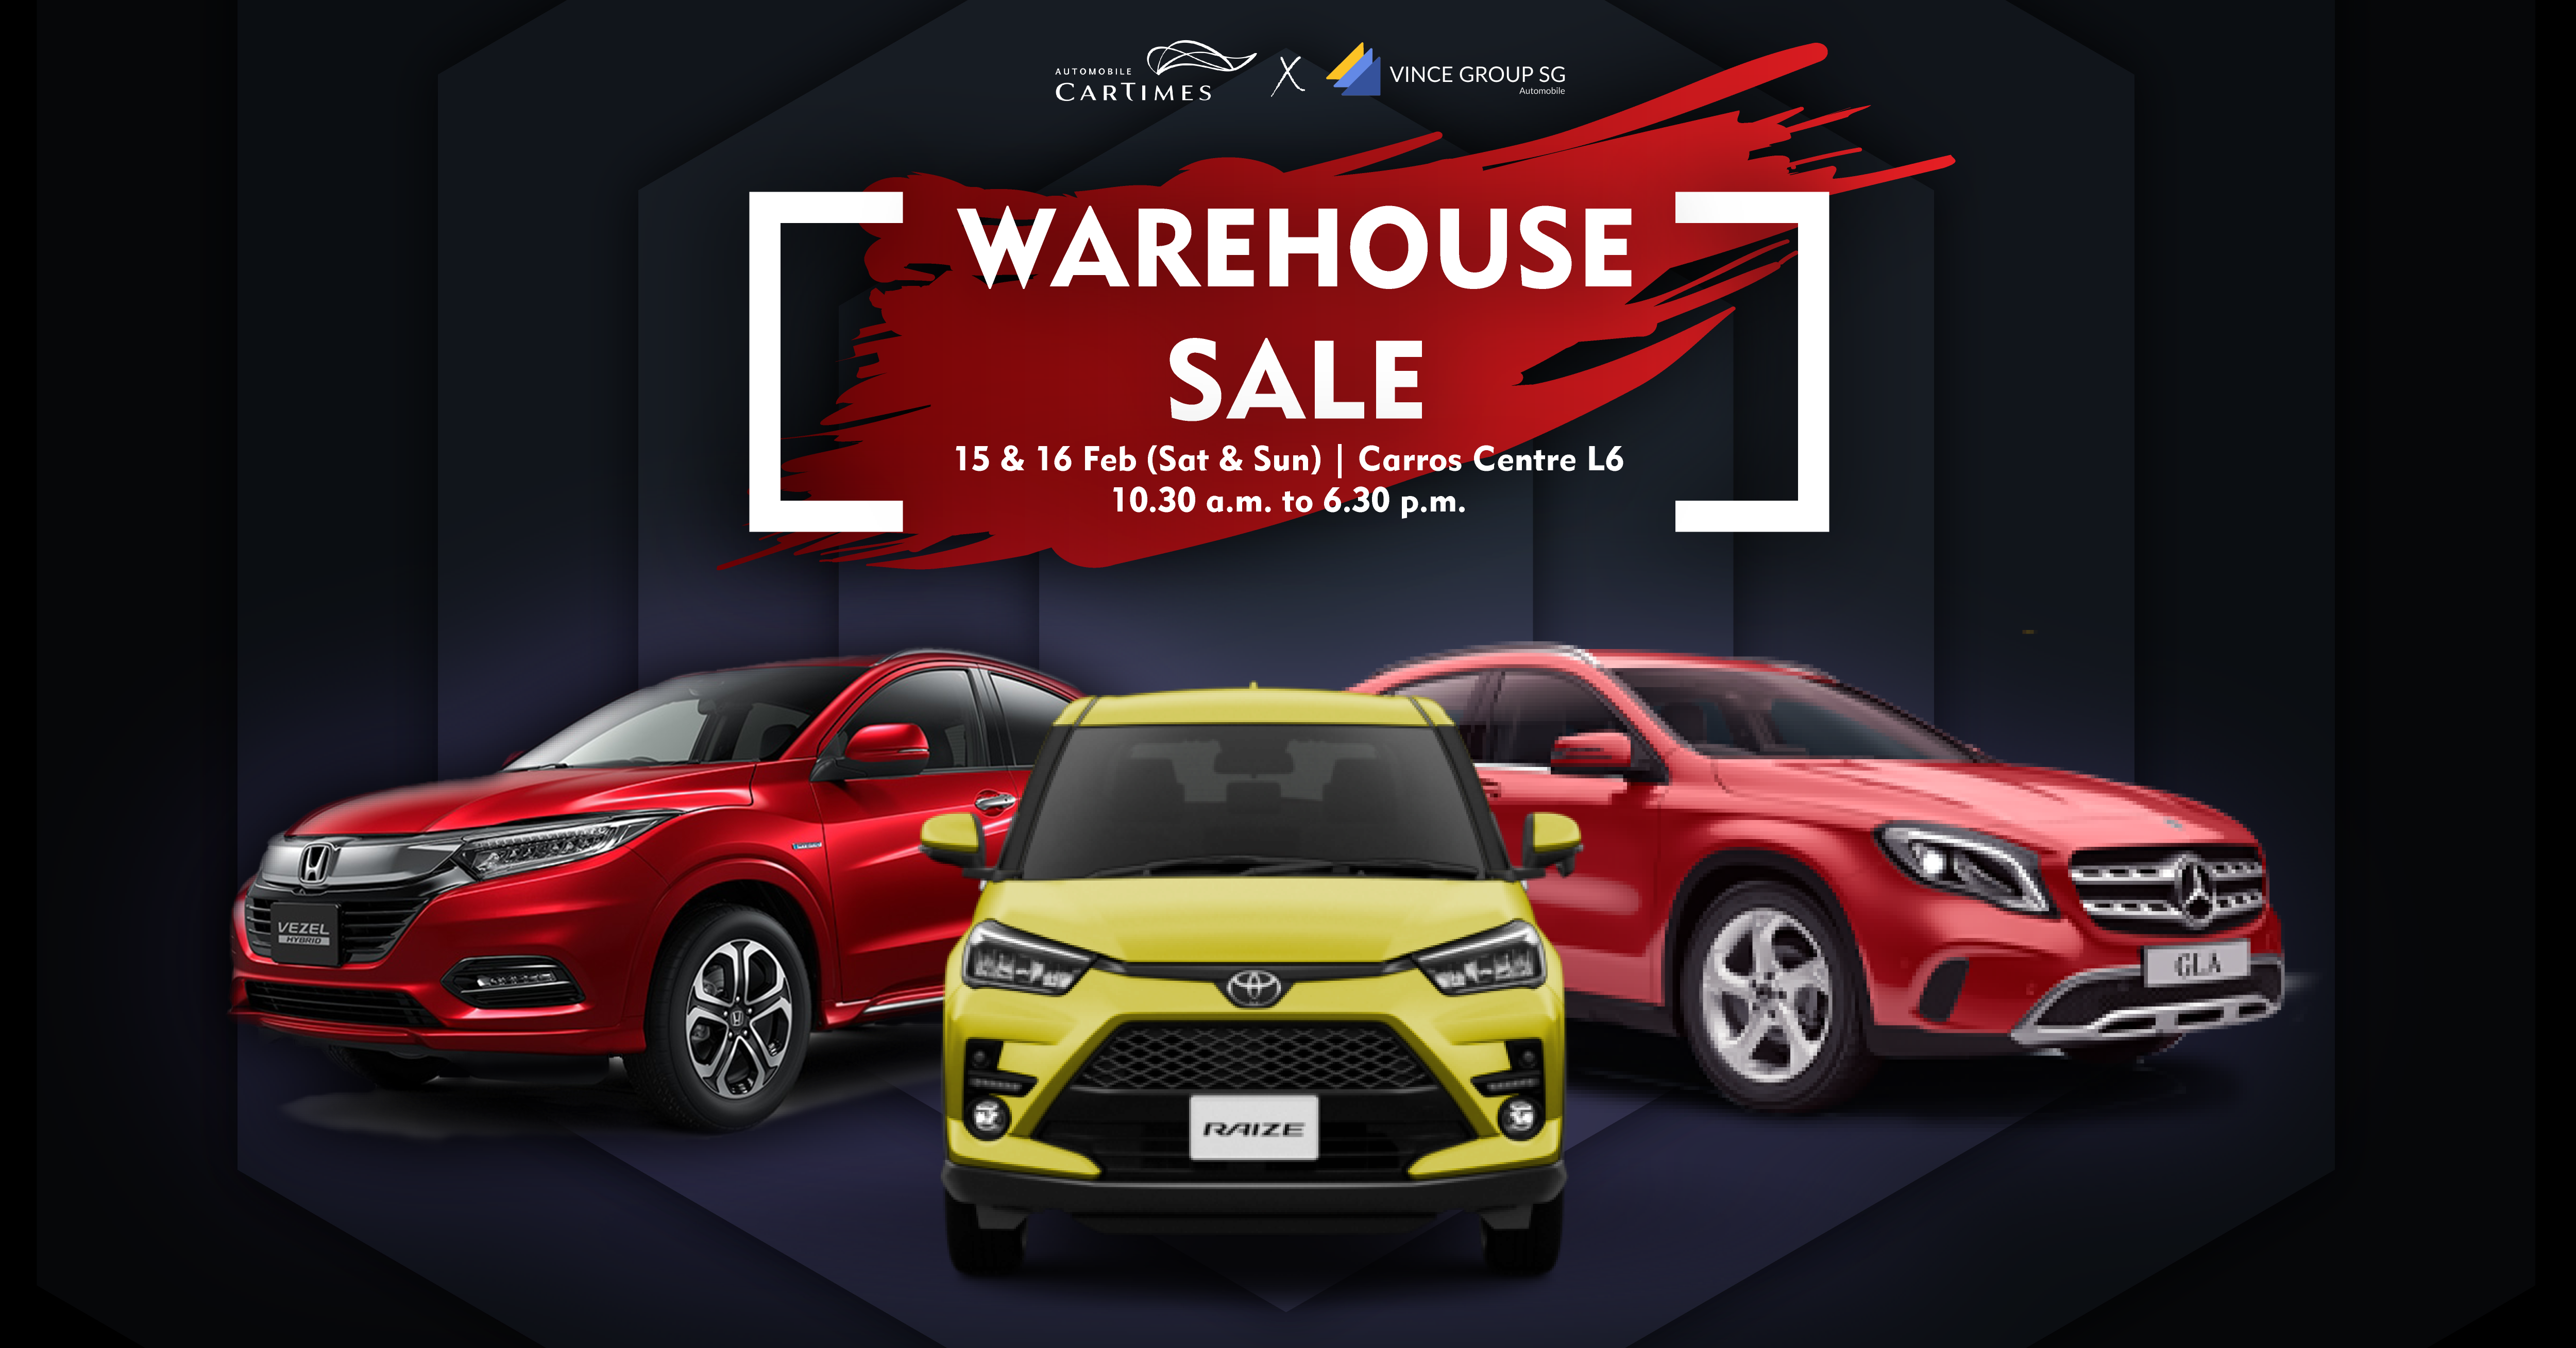 CarTimes X Vince Group SG: Warehouse Clearance Sale 2020 Car Promo